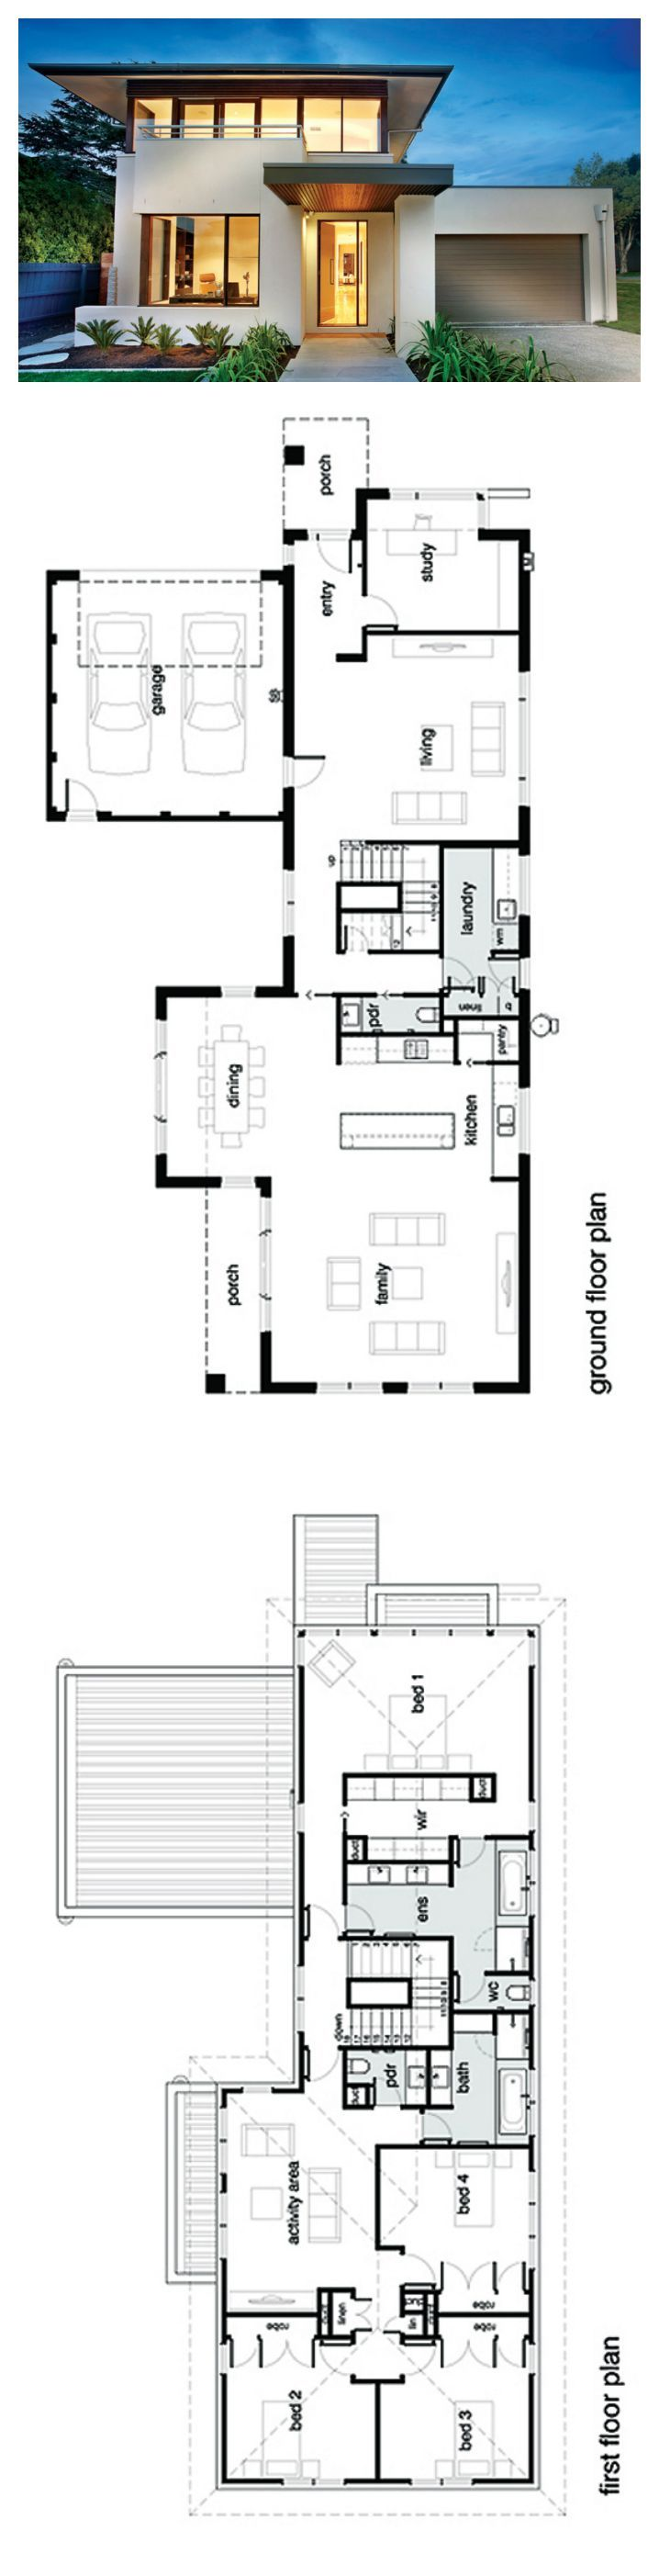 Best 25 modern house plans ideas on pinterest for New farmhouse plans